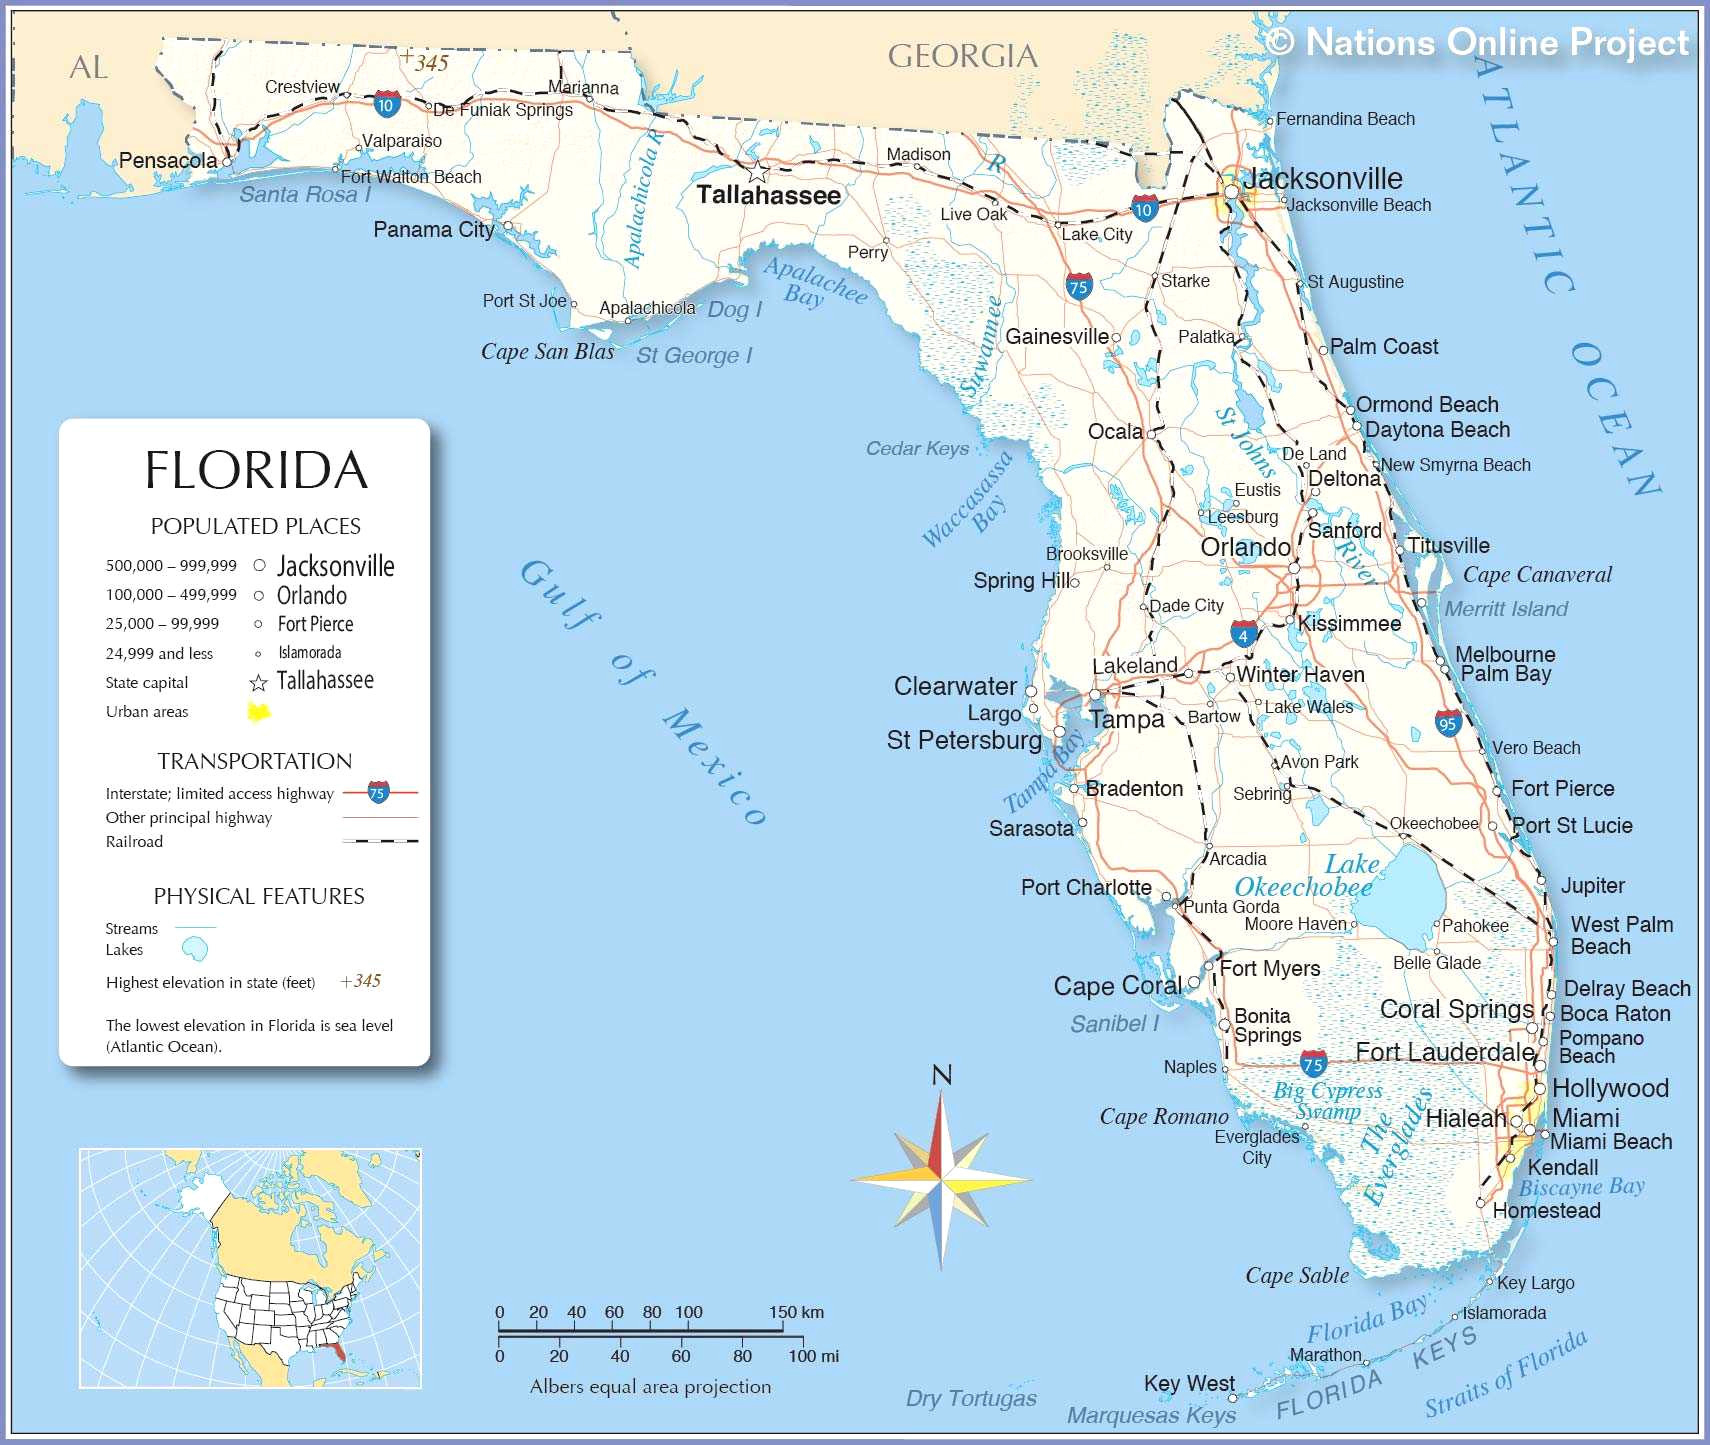 Sanibel Florida Map - Sanibel Beach Florida Map